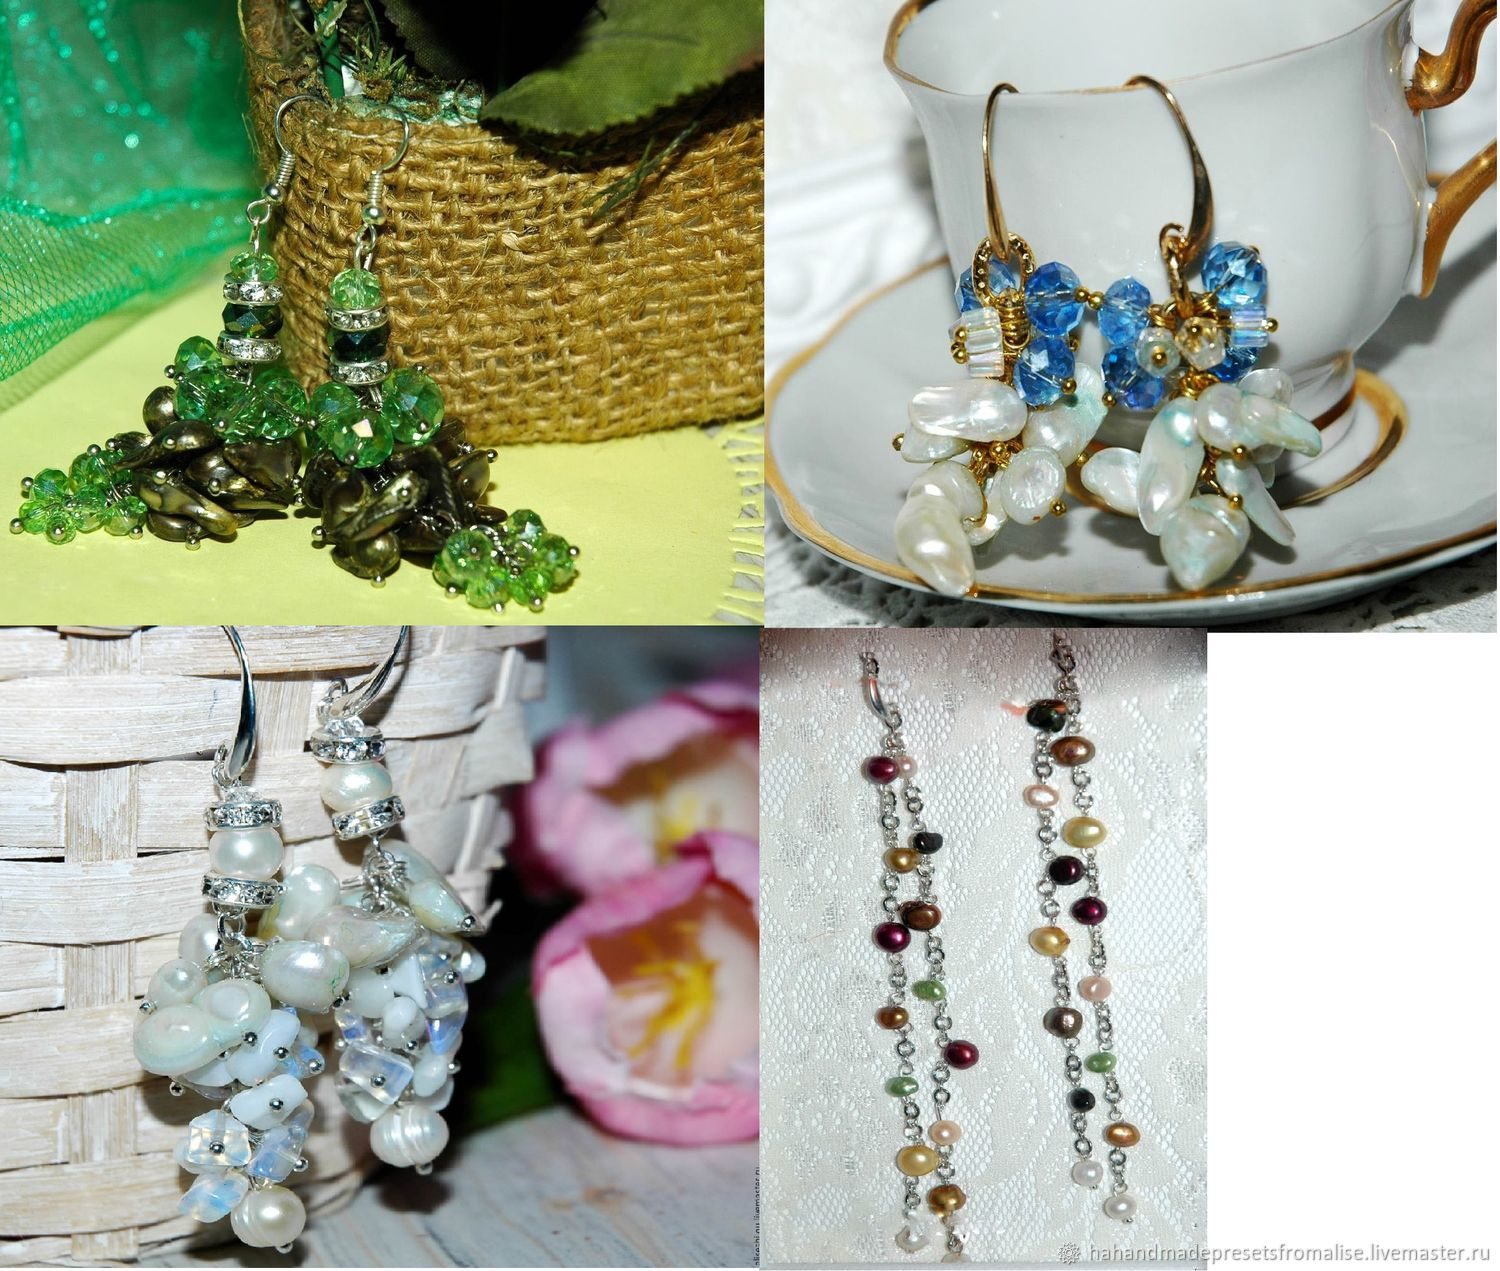 Earrings classic: Earrings with pearls! Promotion! all for 500 rubles, Earrings, Simferopol,  Фото №1